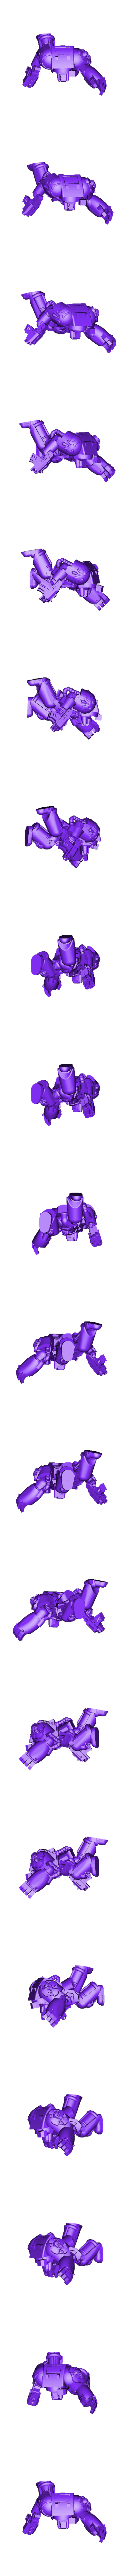 SpaceShipEnterTroopMirror_4_PF_Open_SB_1.stl Download free STL file Bloody Heavily Armoured Space Soldiers • 3D print object, PhysUdo